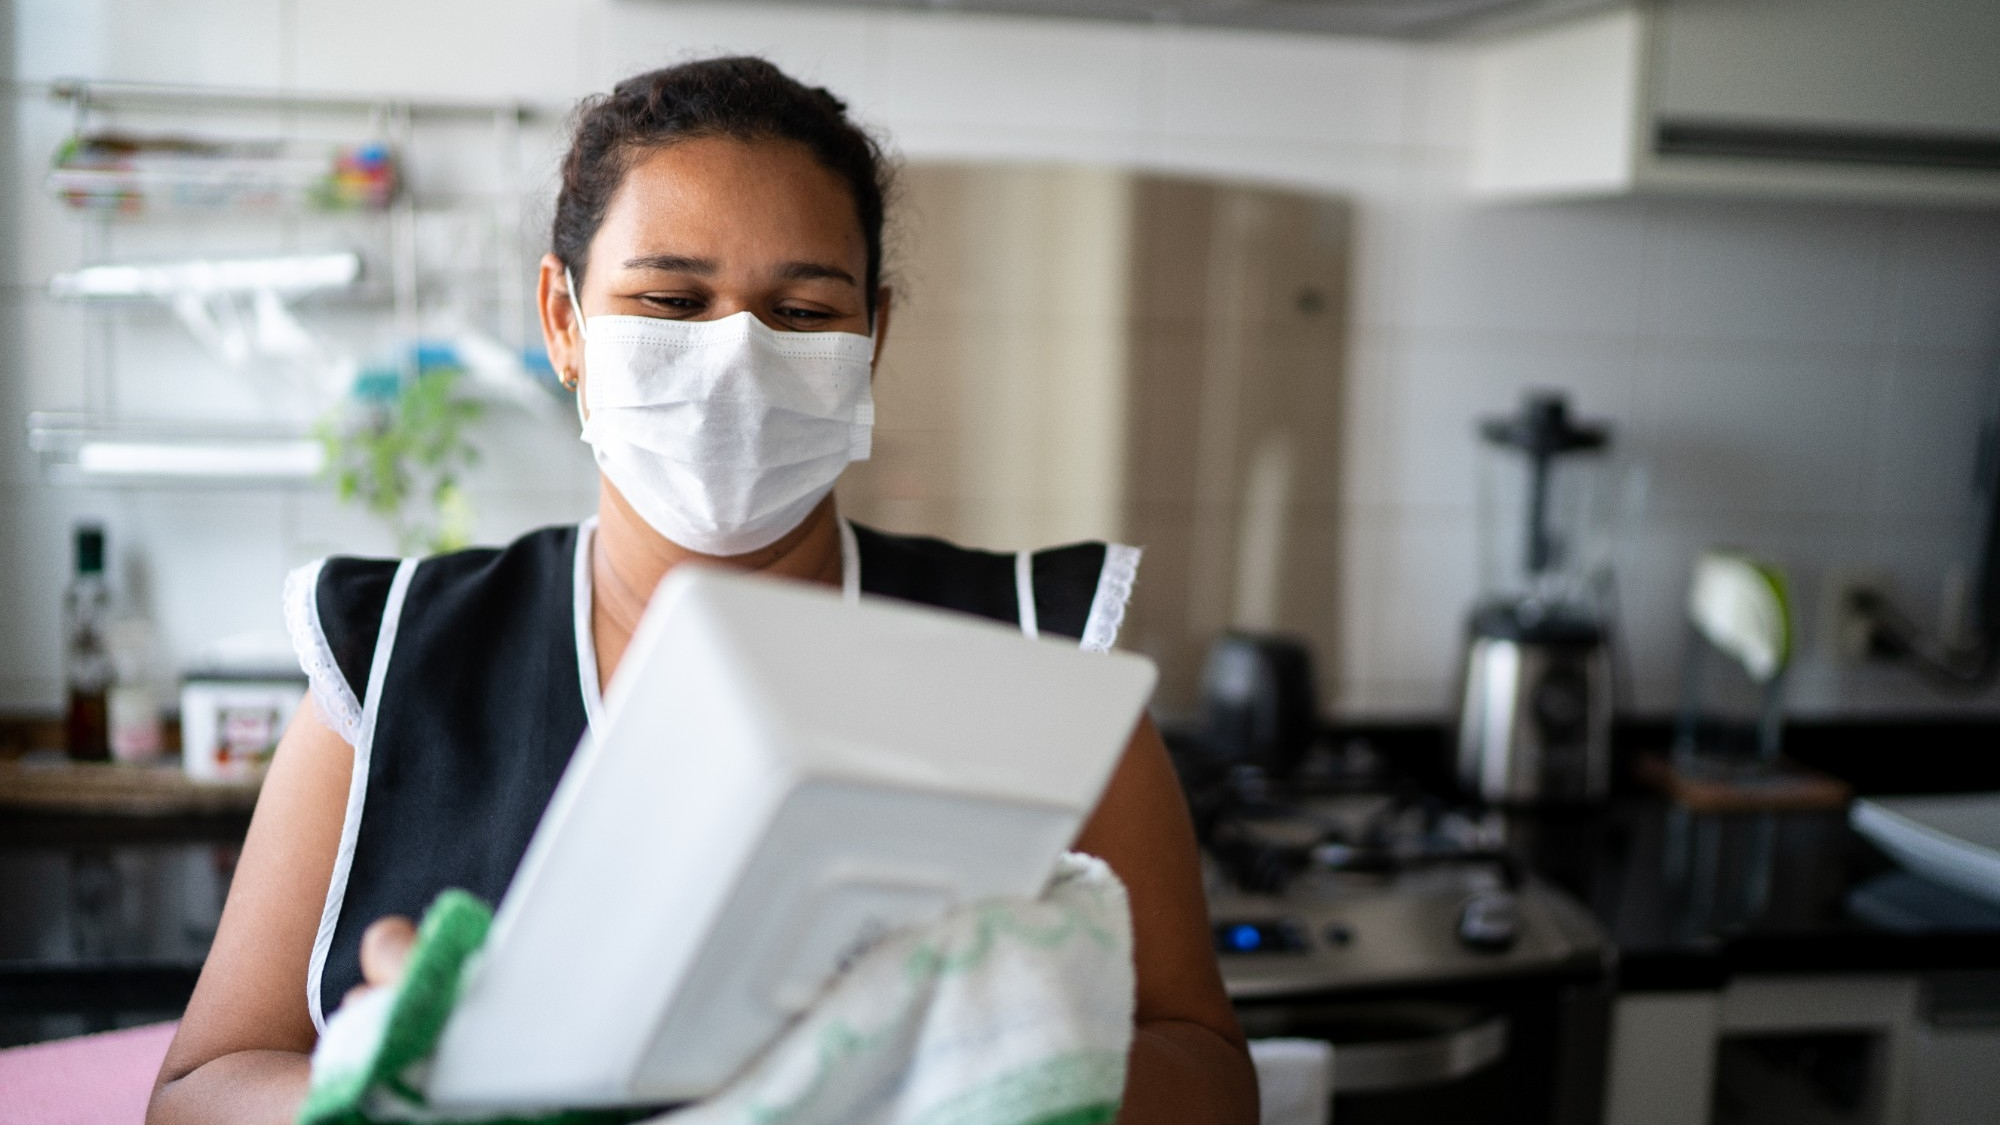 Housekeeper washing the dishes wearing a mask, photo by FG Trade/Getty Images